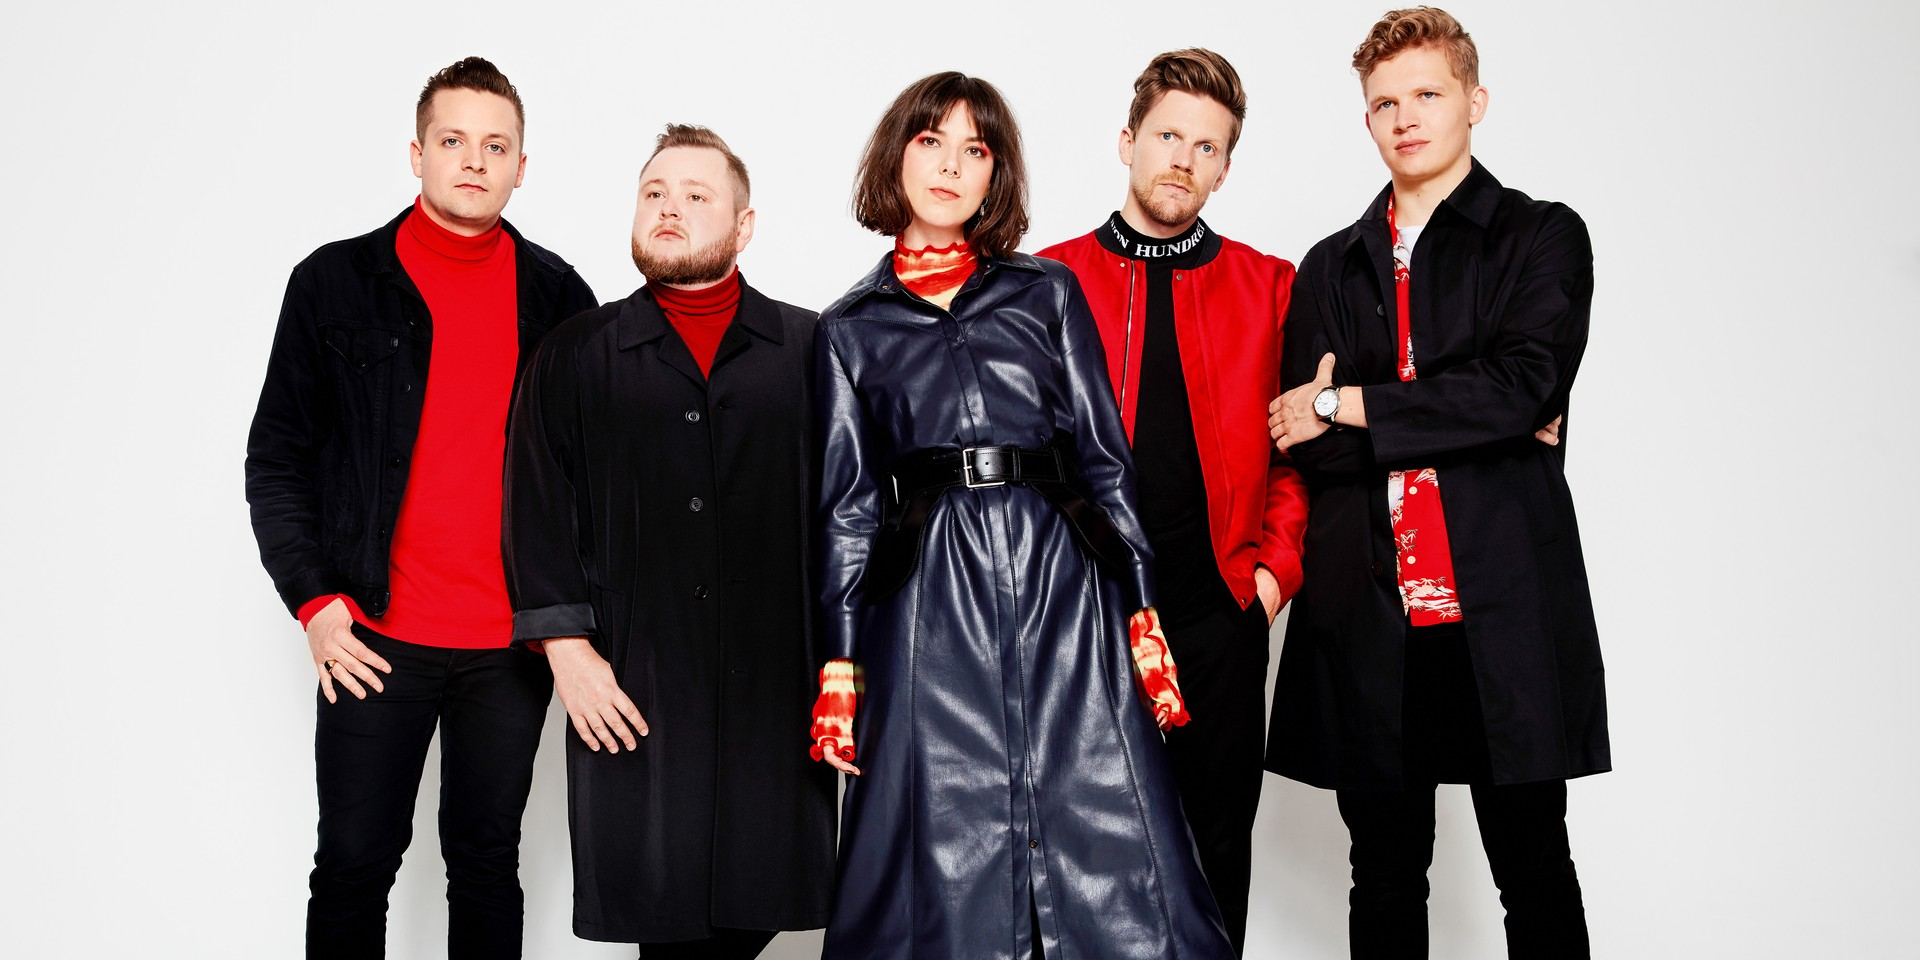 7 things you didn't know about Of Monsters and Men's latest album, Fever Dream